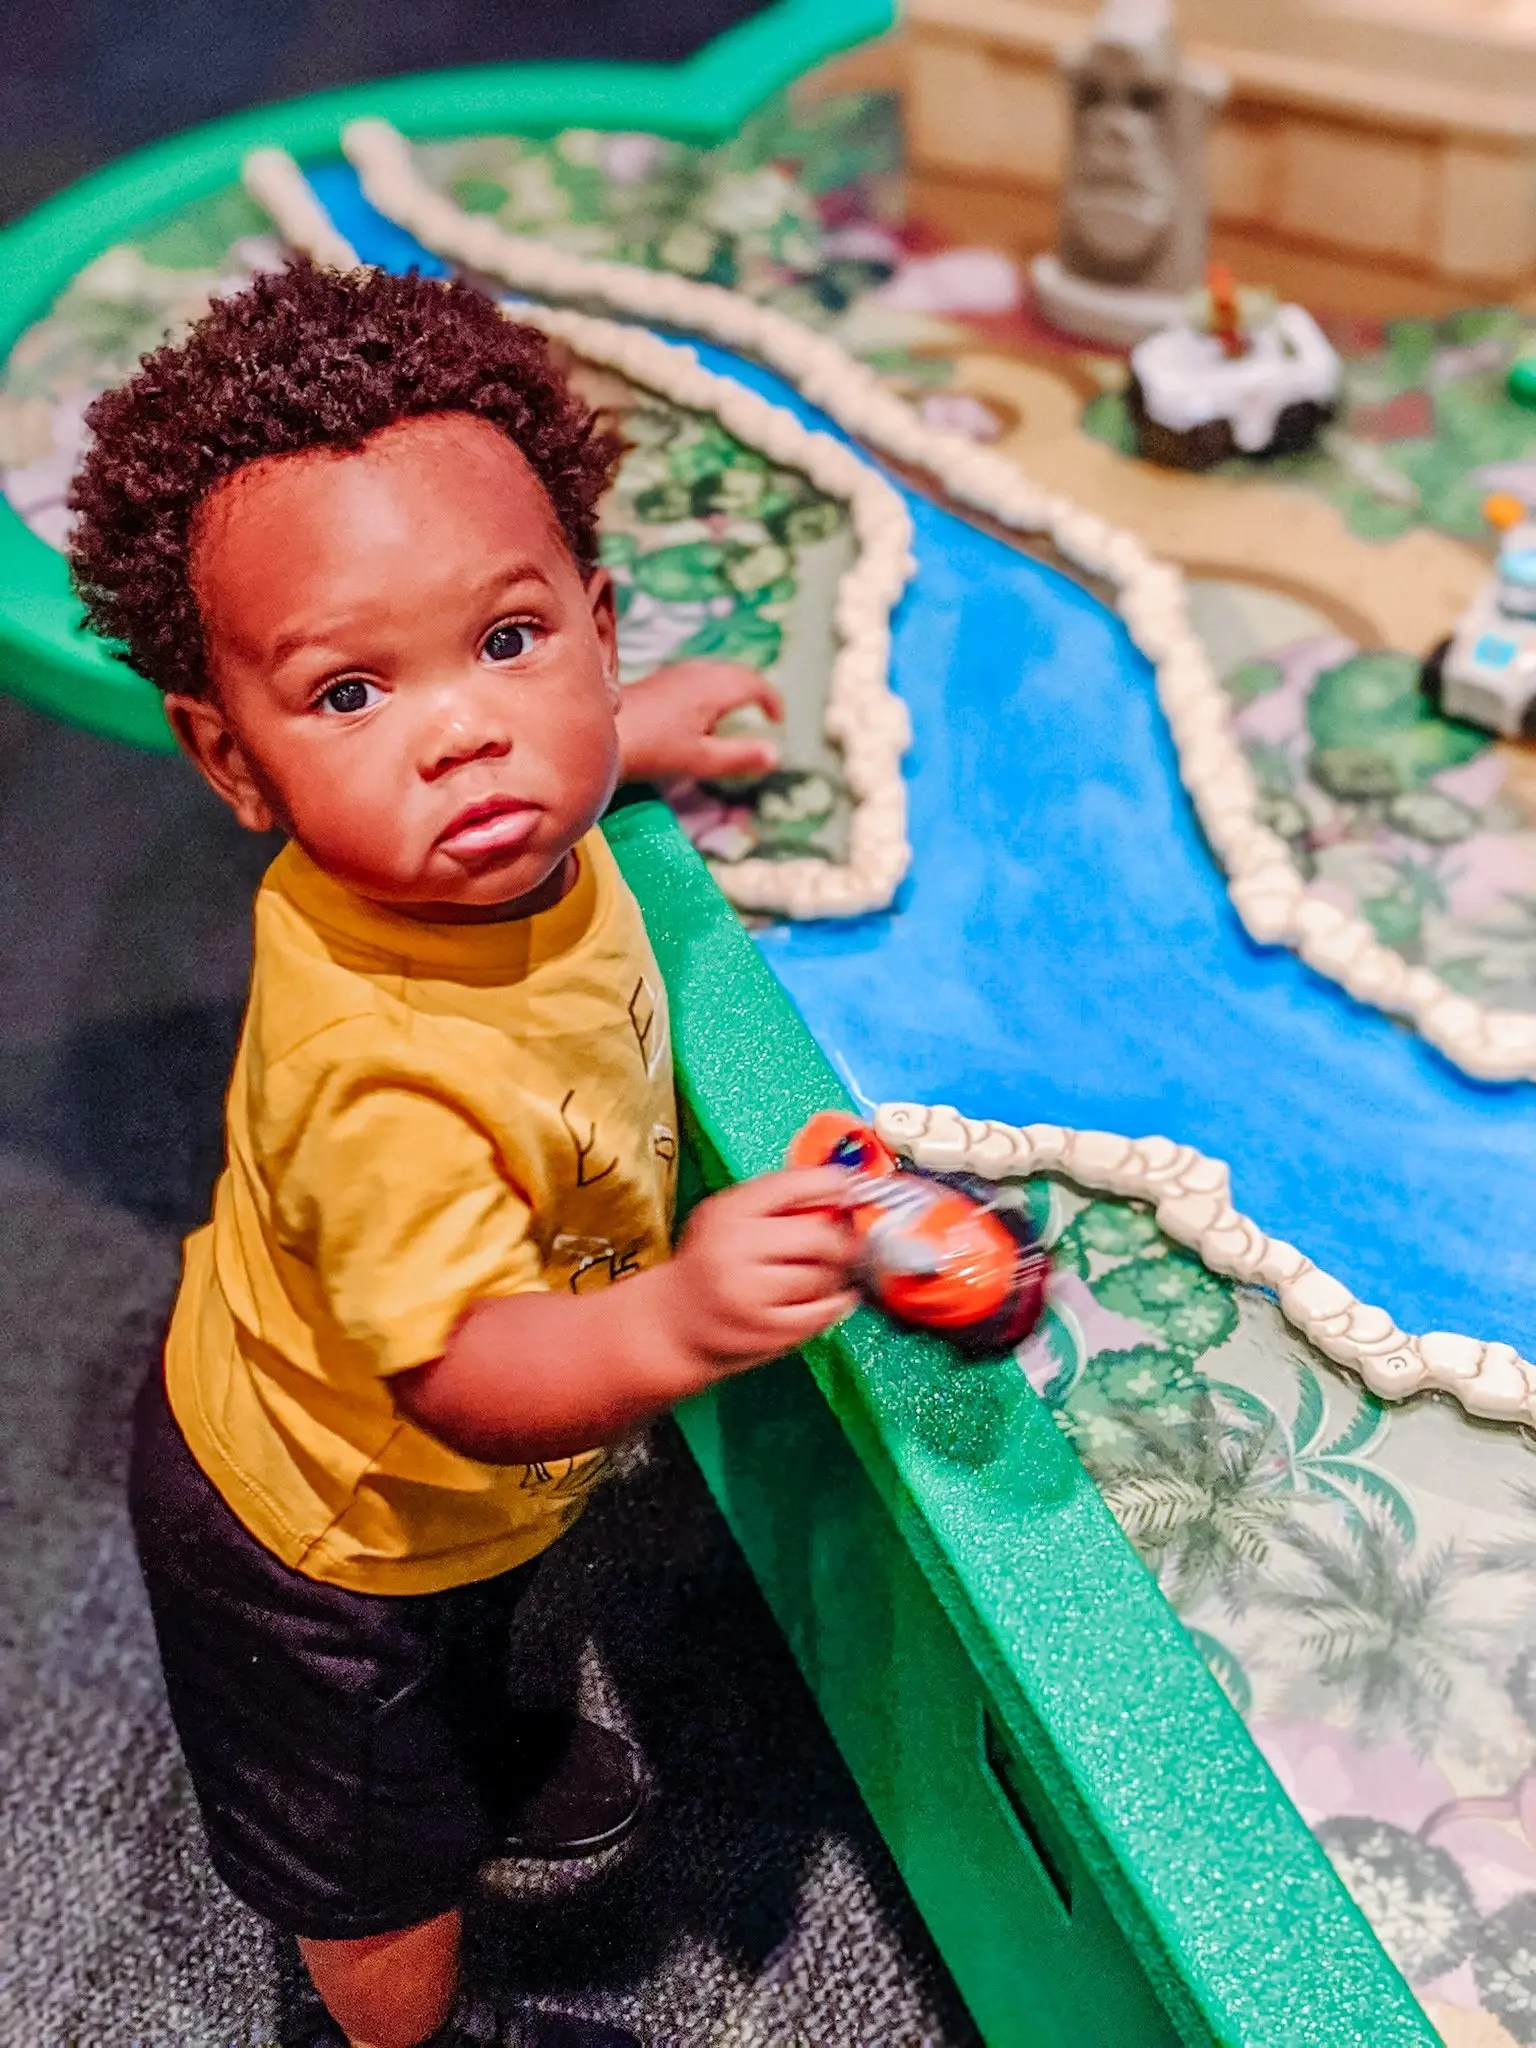 baby at sensory table at the museum